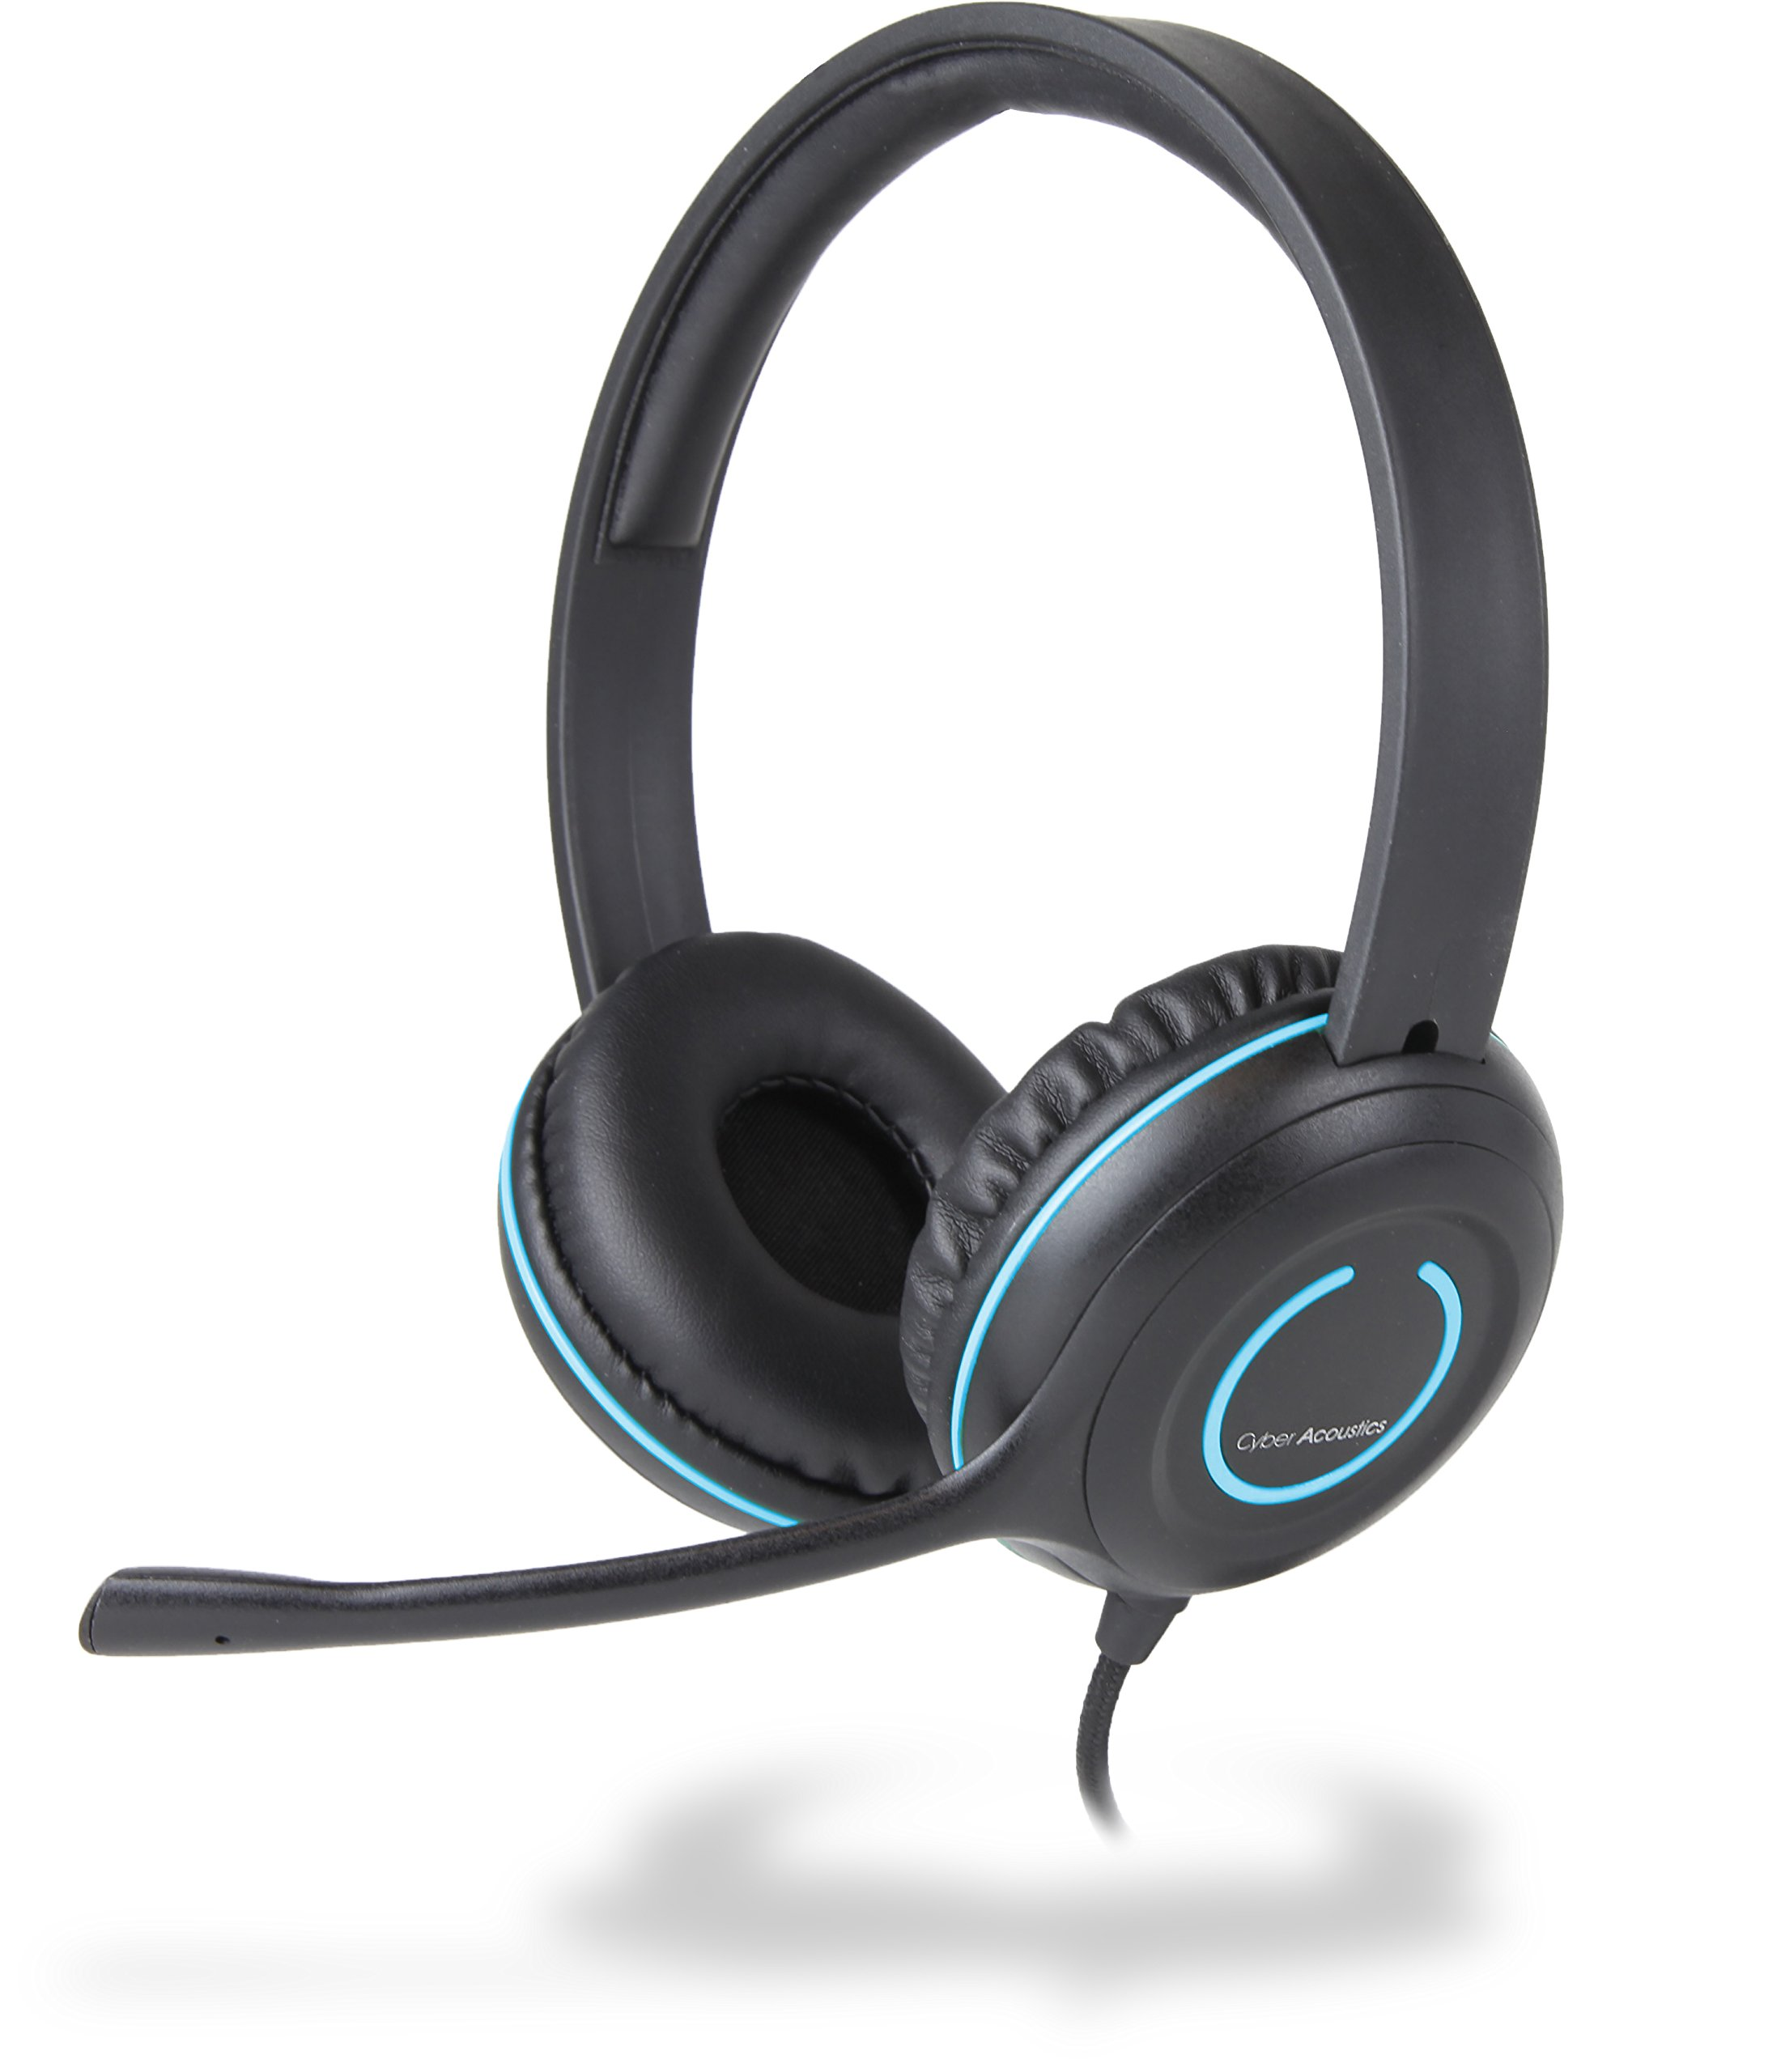 Cyber Acoustics 3.5mm Stereo Headset with Headphones and Noise Cancelling Microphone for PCs, Tablets, and Cell Phones in the Office, Classroom or Home (AC-5002)